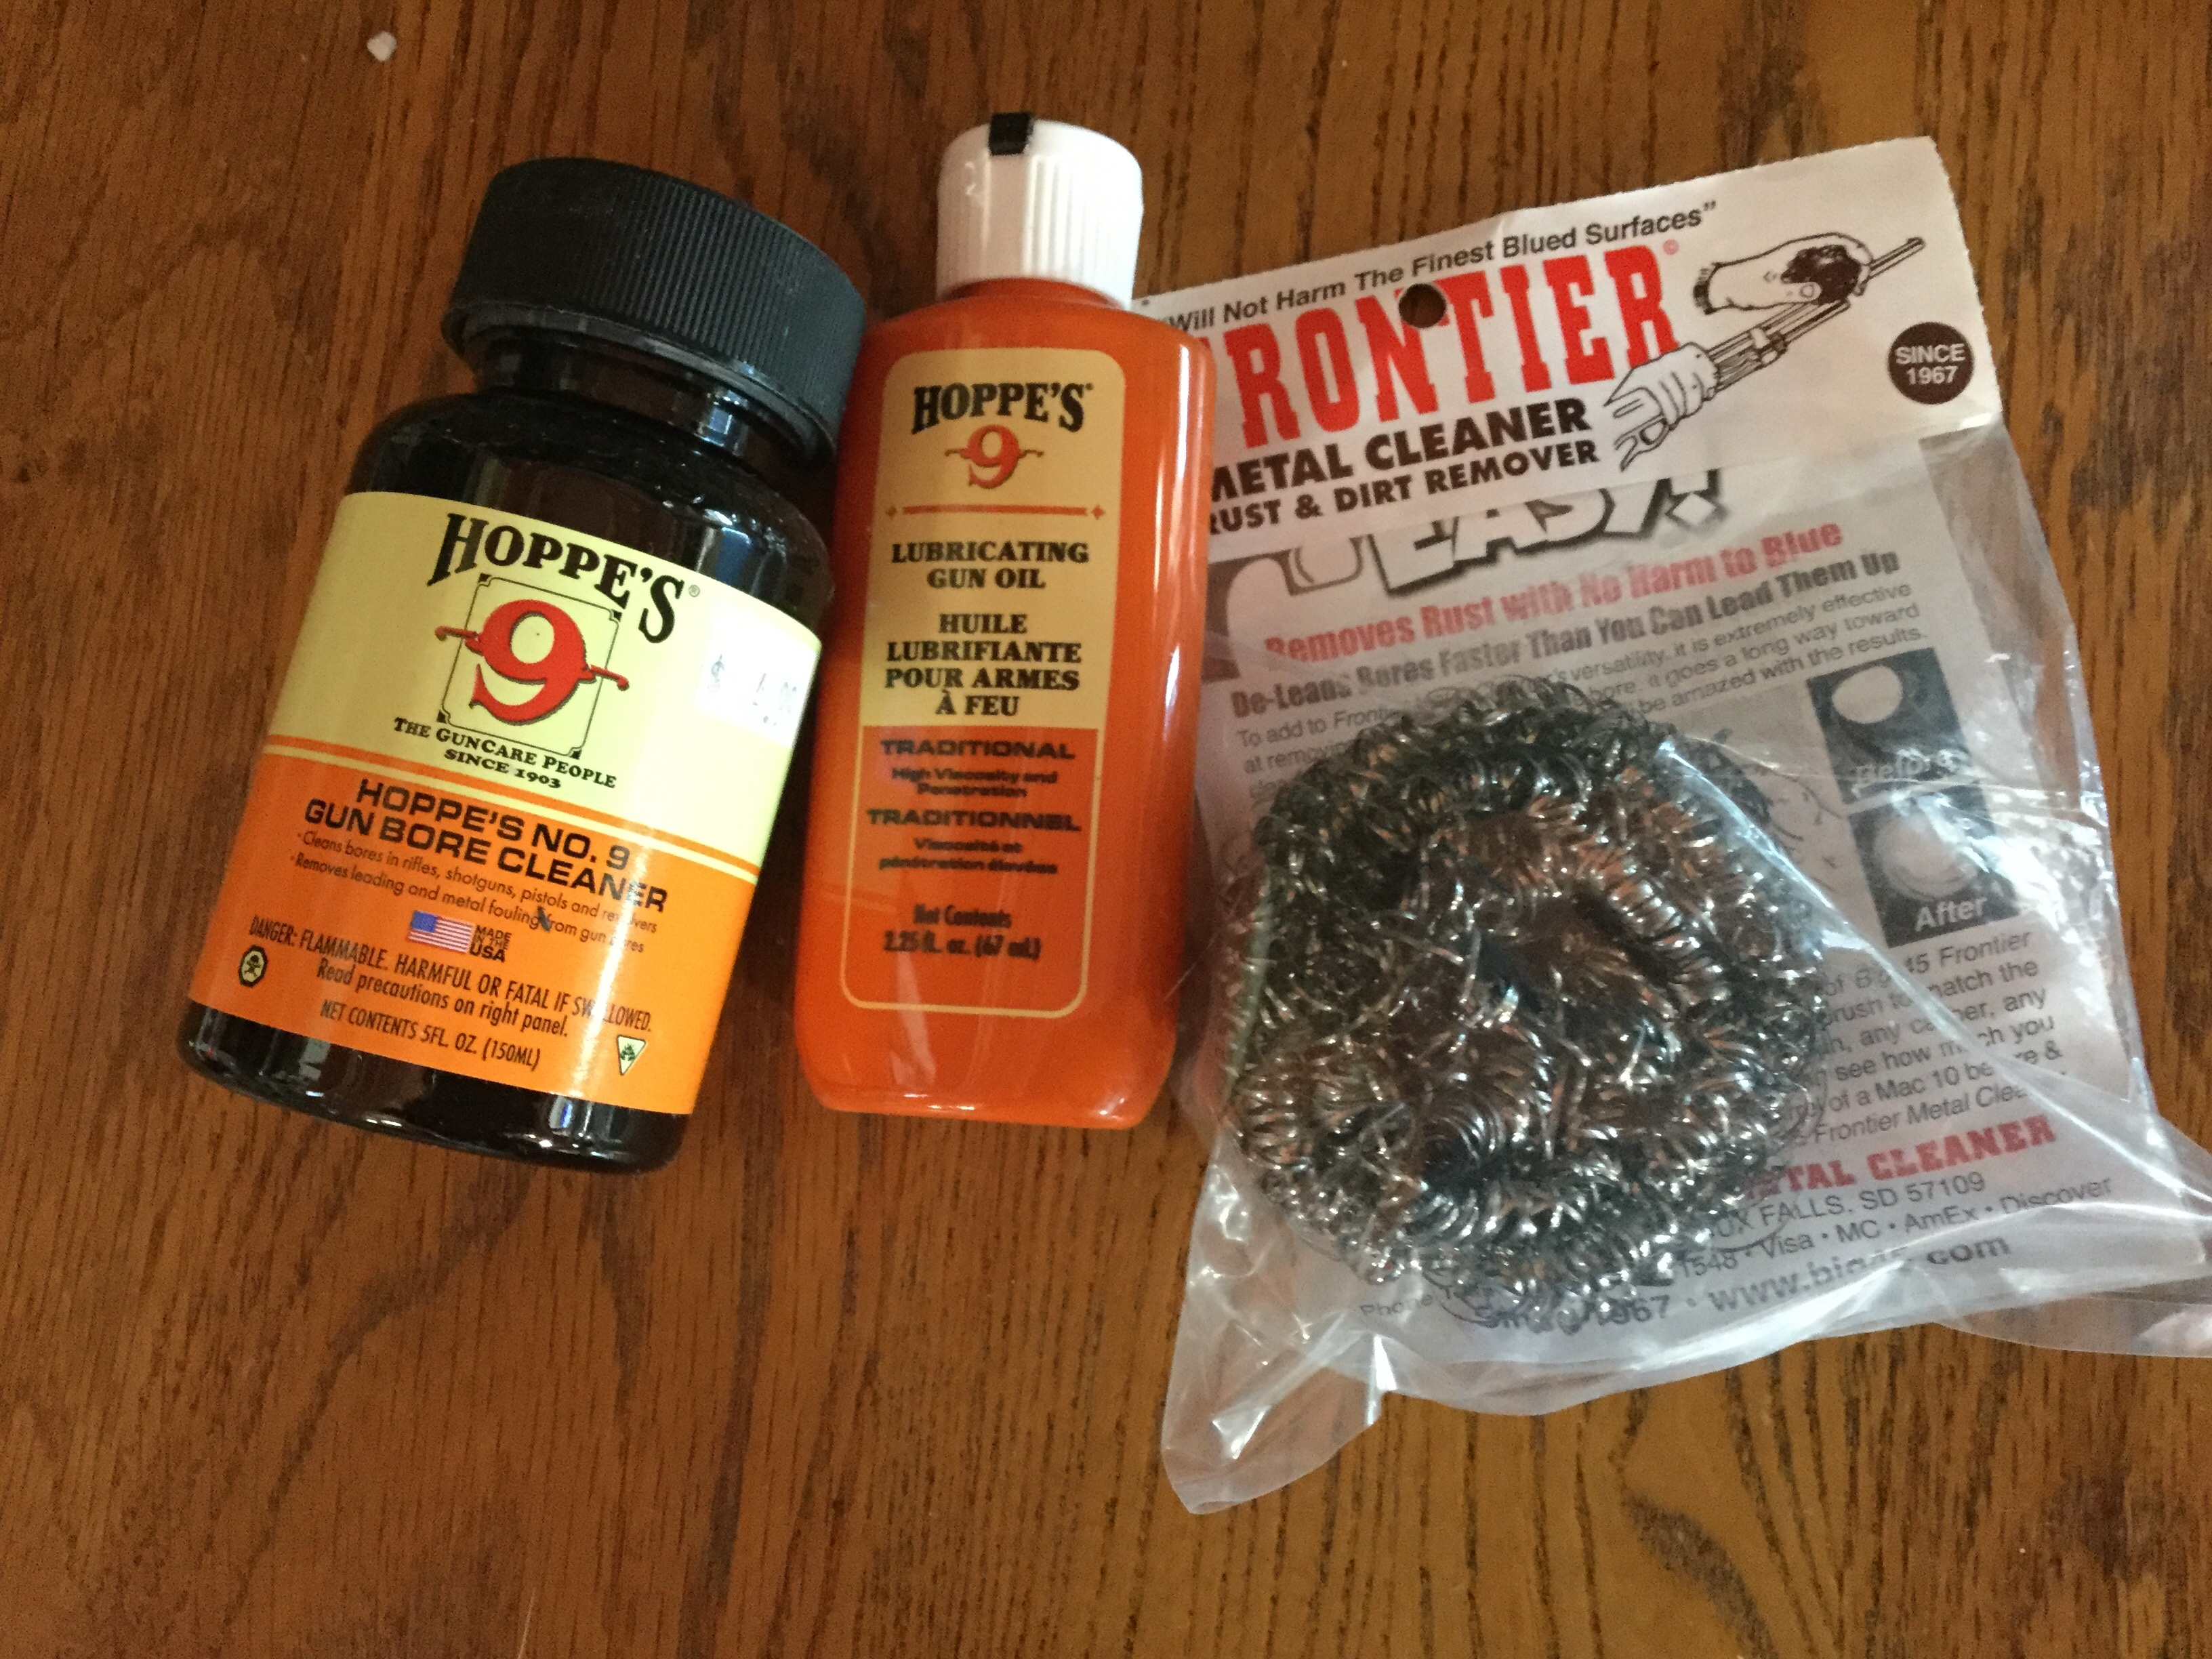 Great Christmas Stocking Stuffers- Hoppe's No  9 gun cleaner